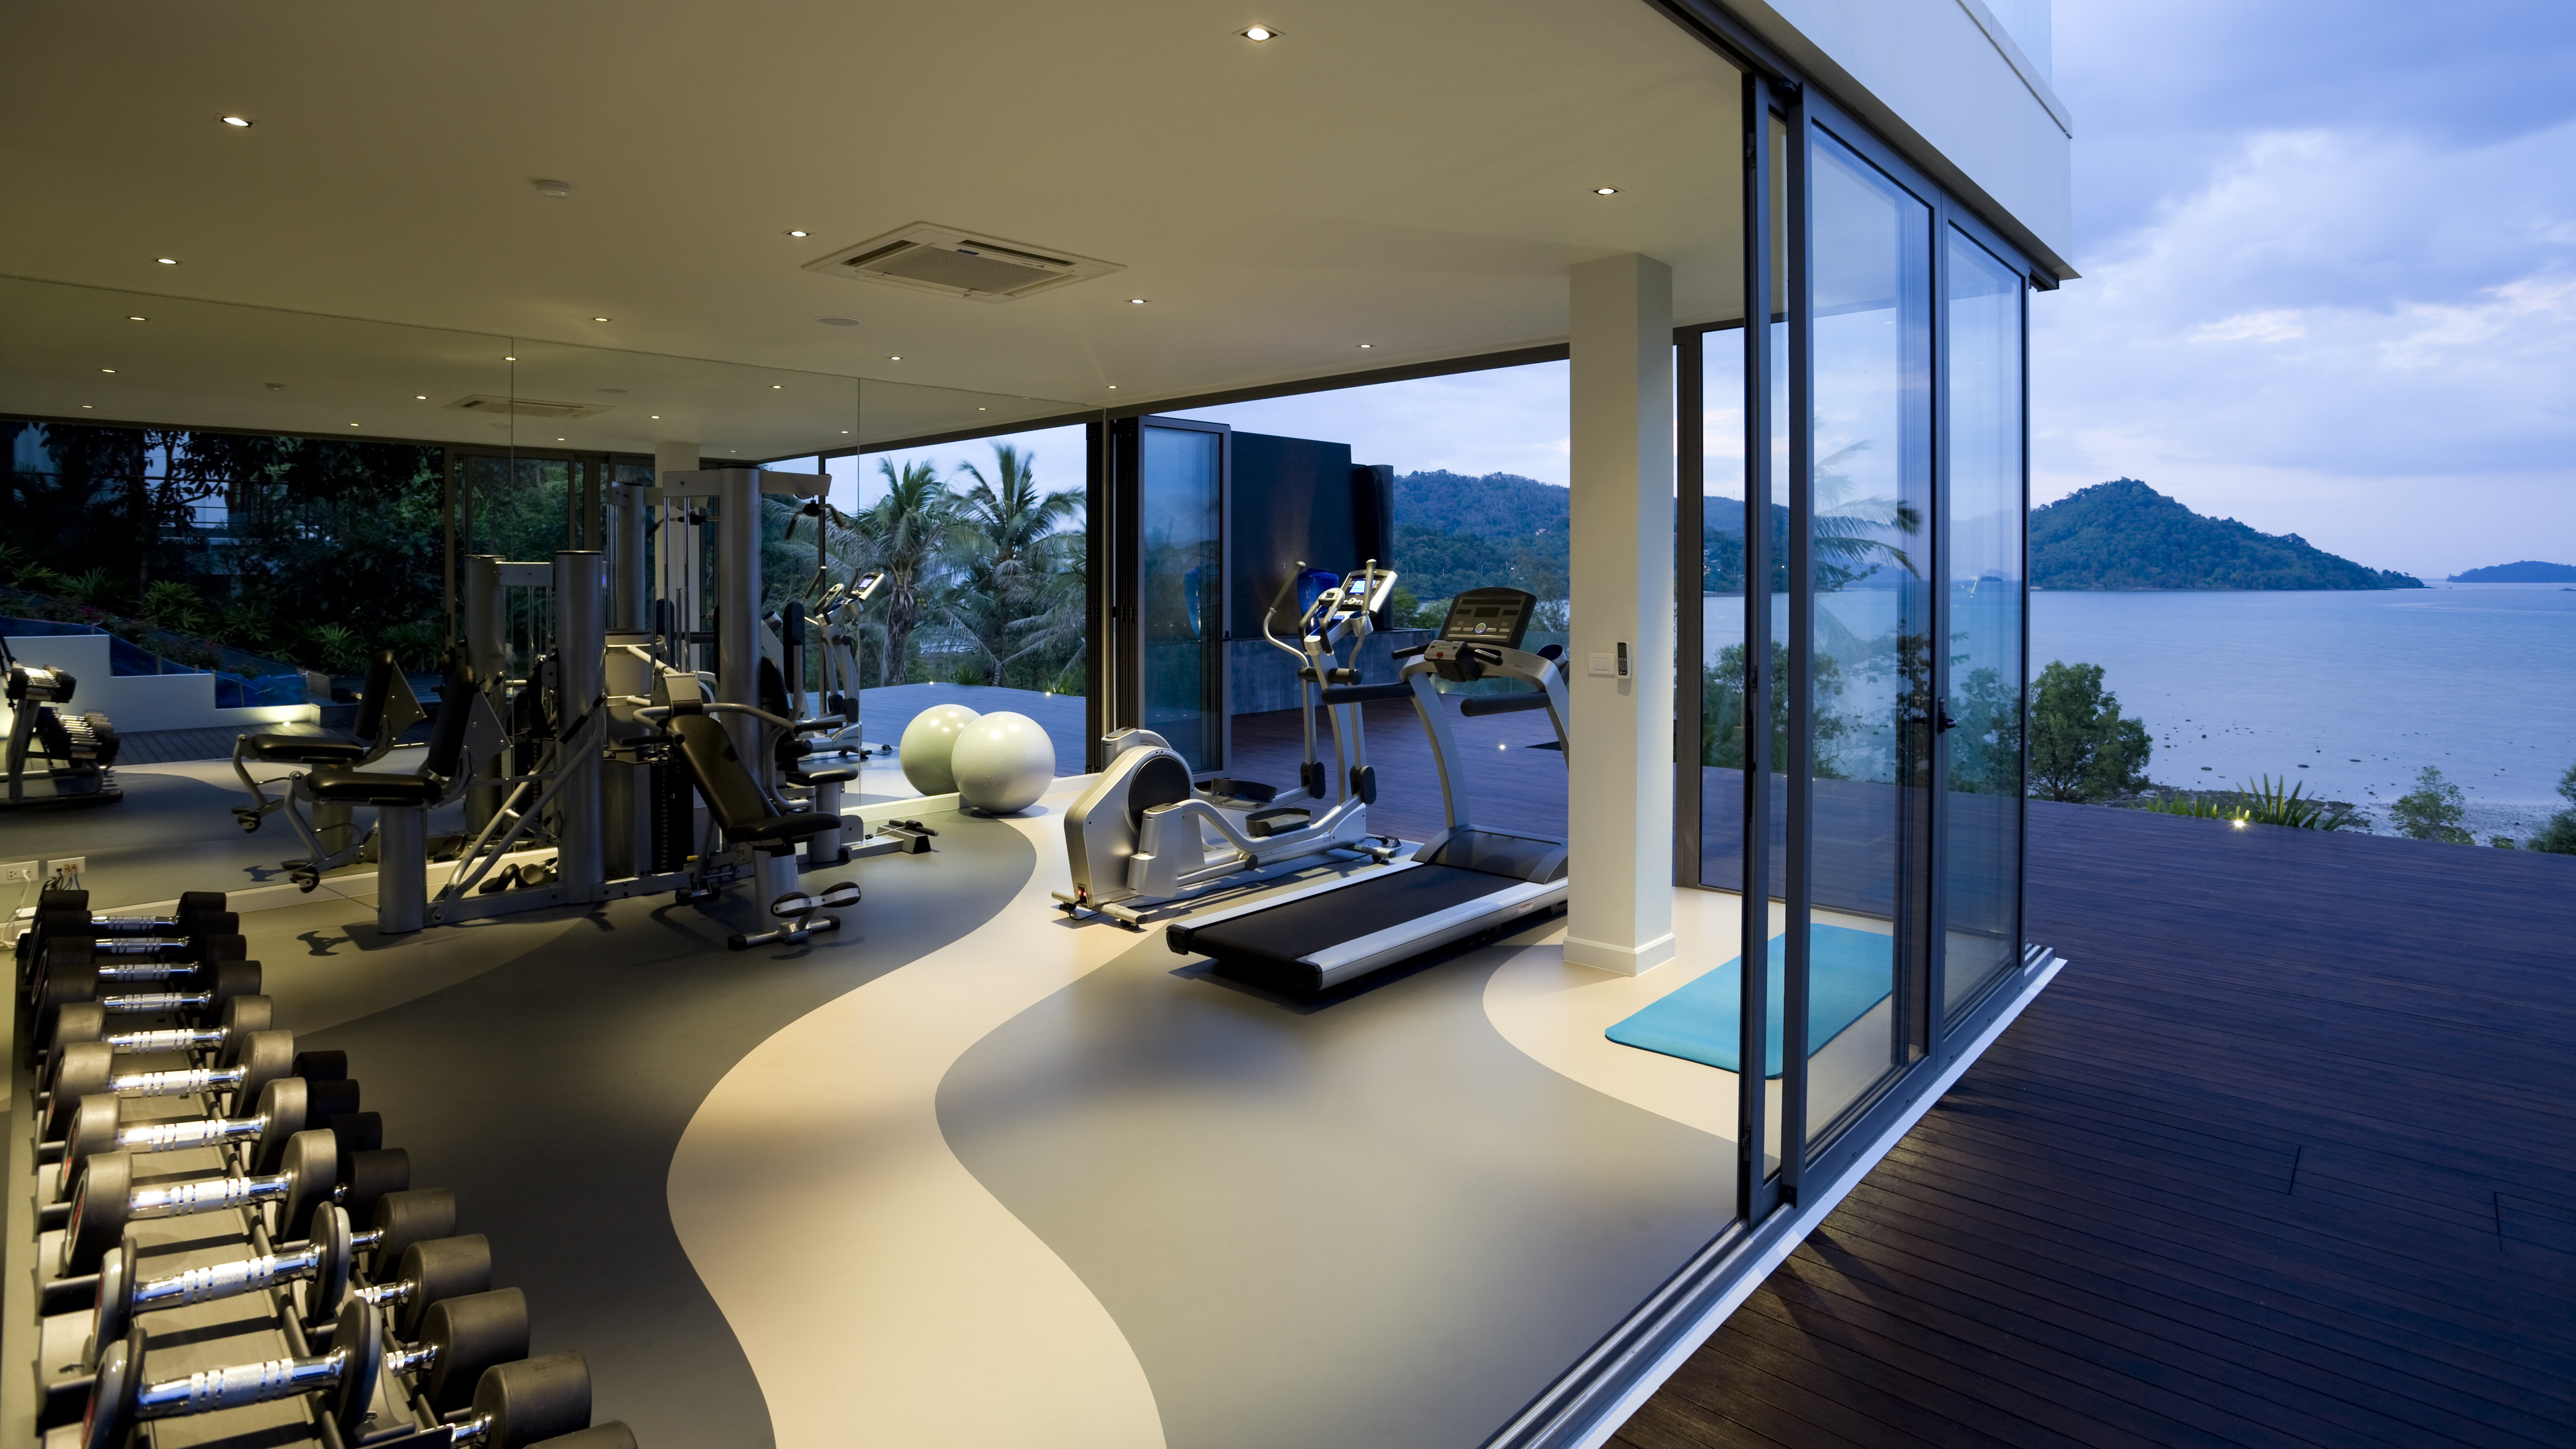 How to build a home gym: perfect workouts in your own space | Real Homes